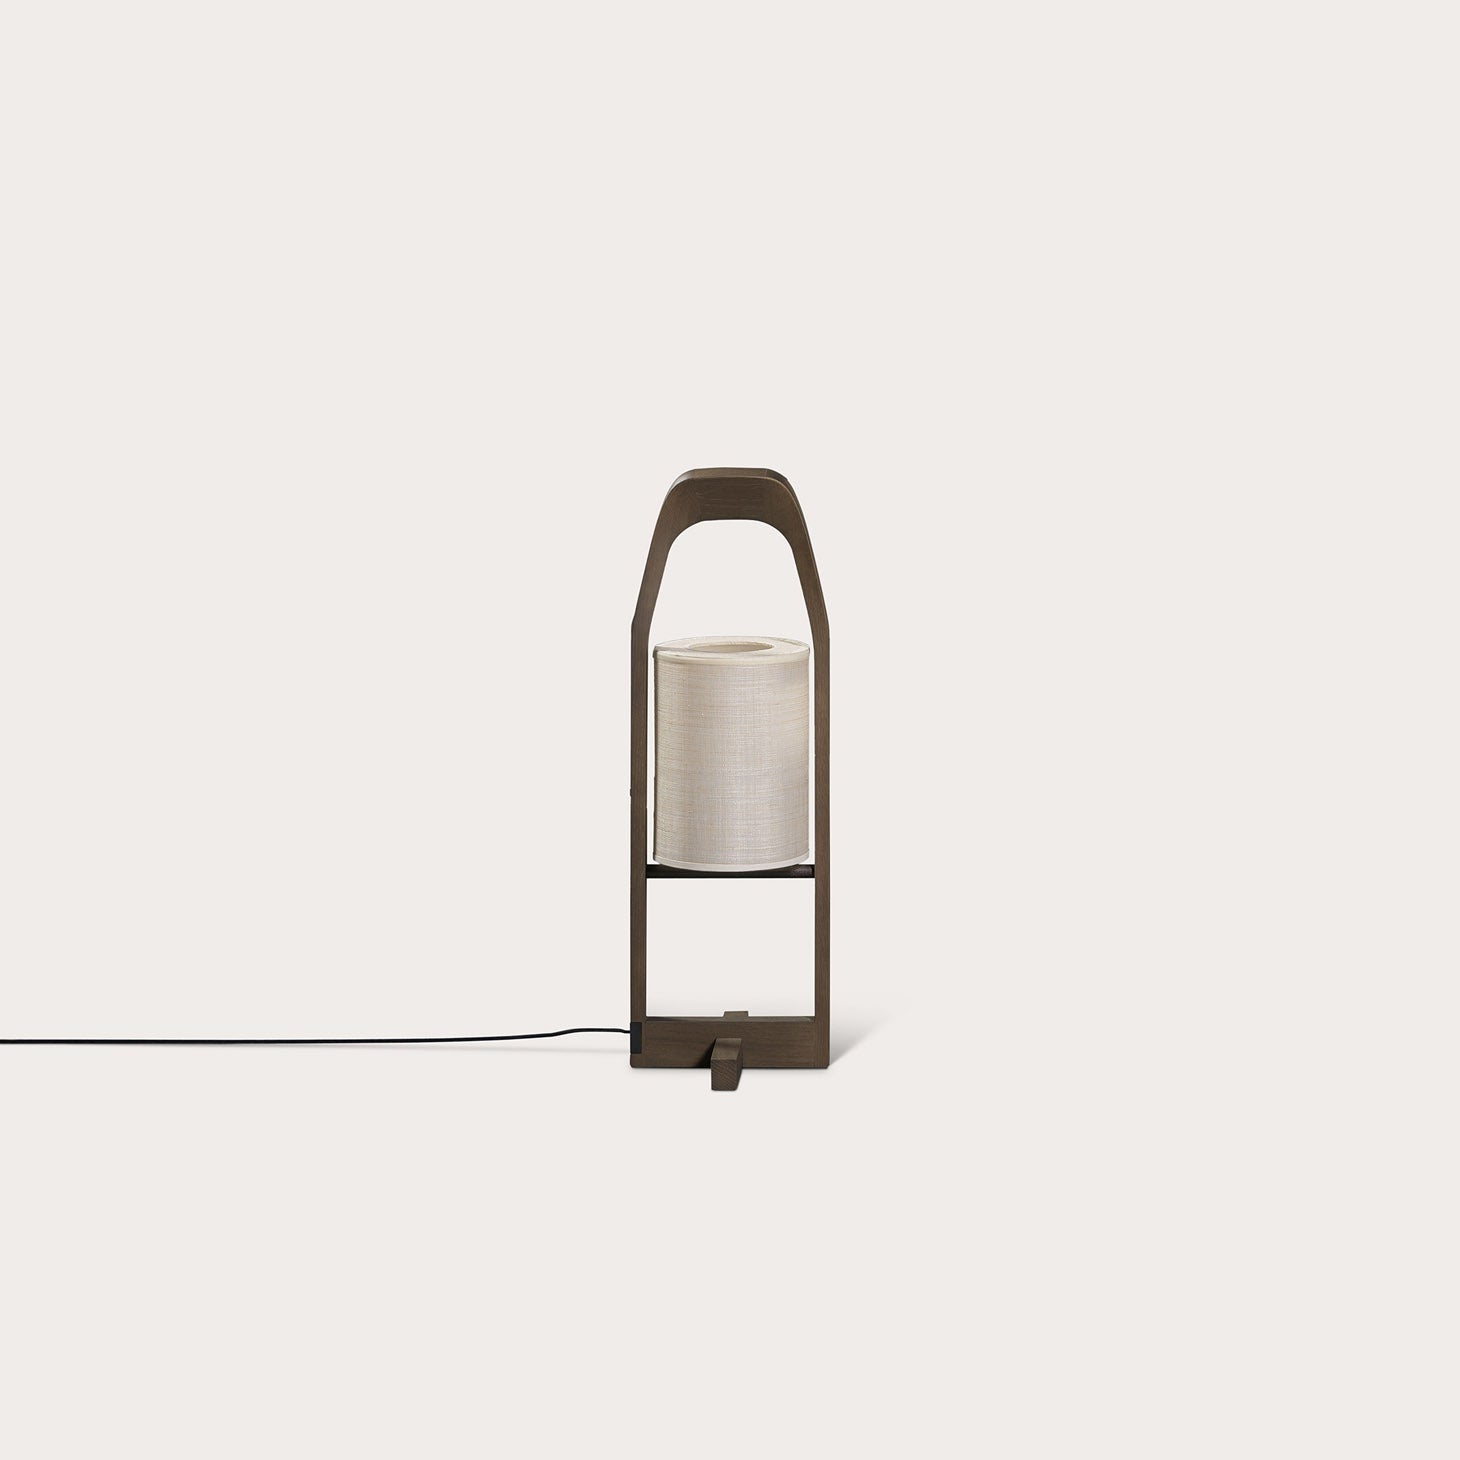 Kobe Lighting Bruno Moinard Designer Furniture Sku: 773-160-10004